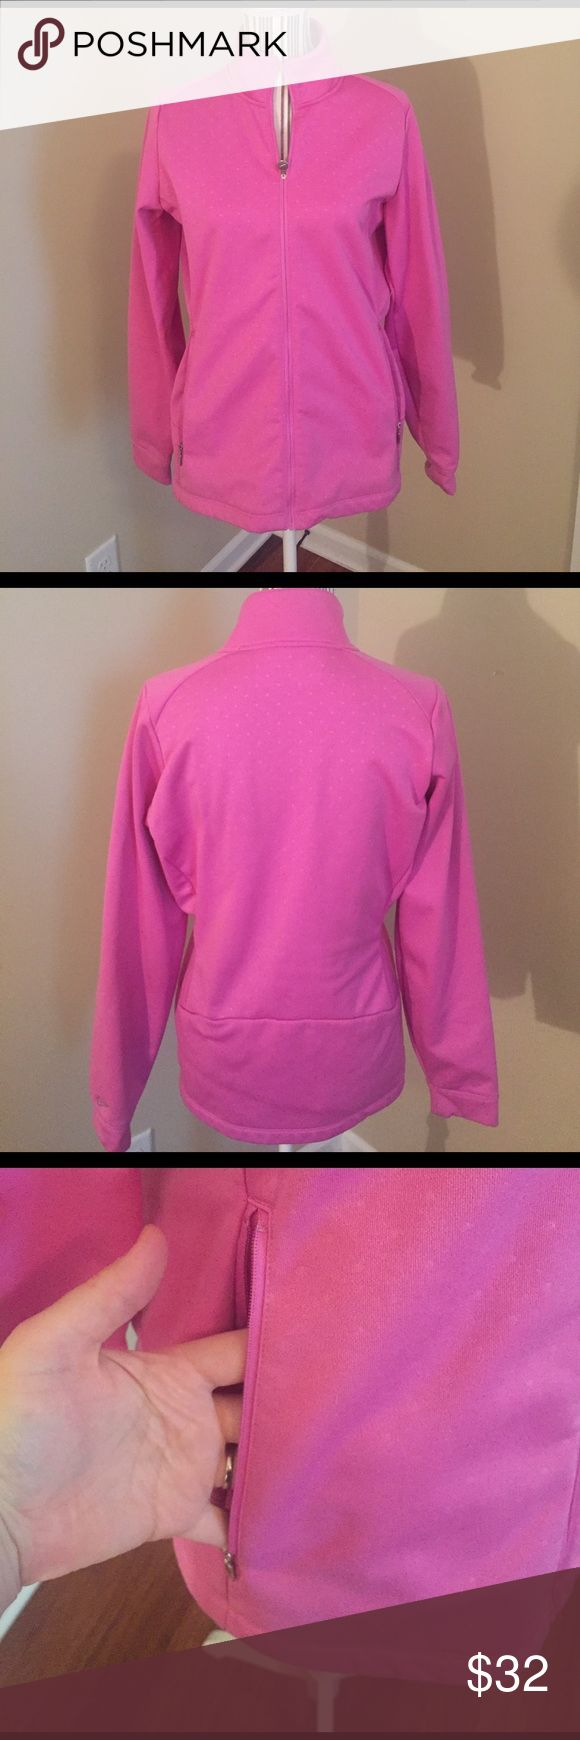 Nike Golf jacket Pink with subtle polka dot design Nike Jackets & Coats